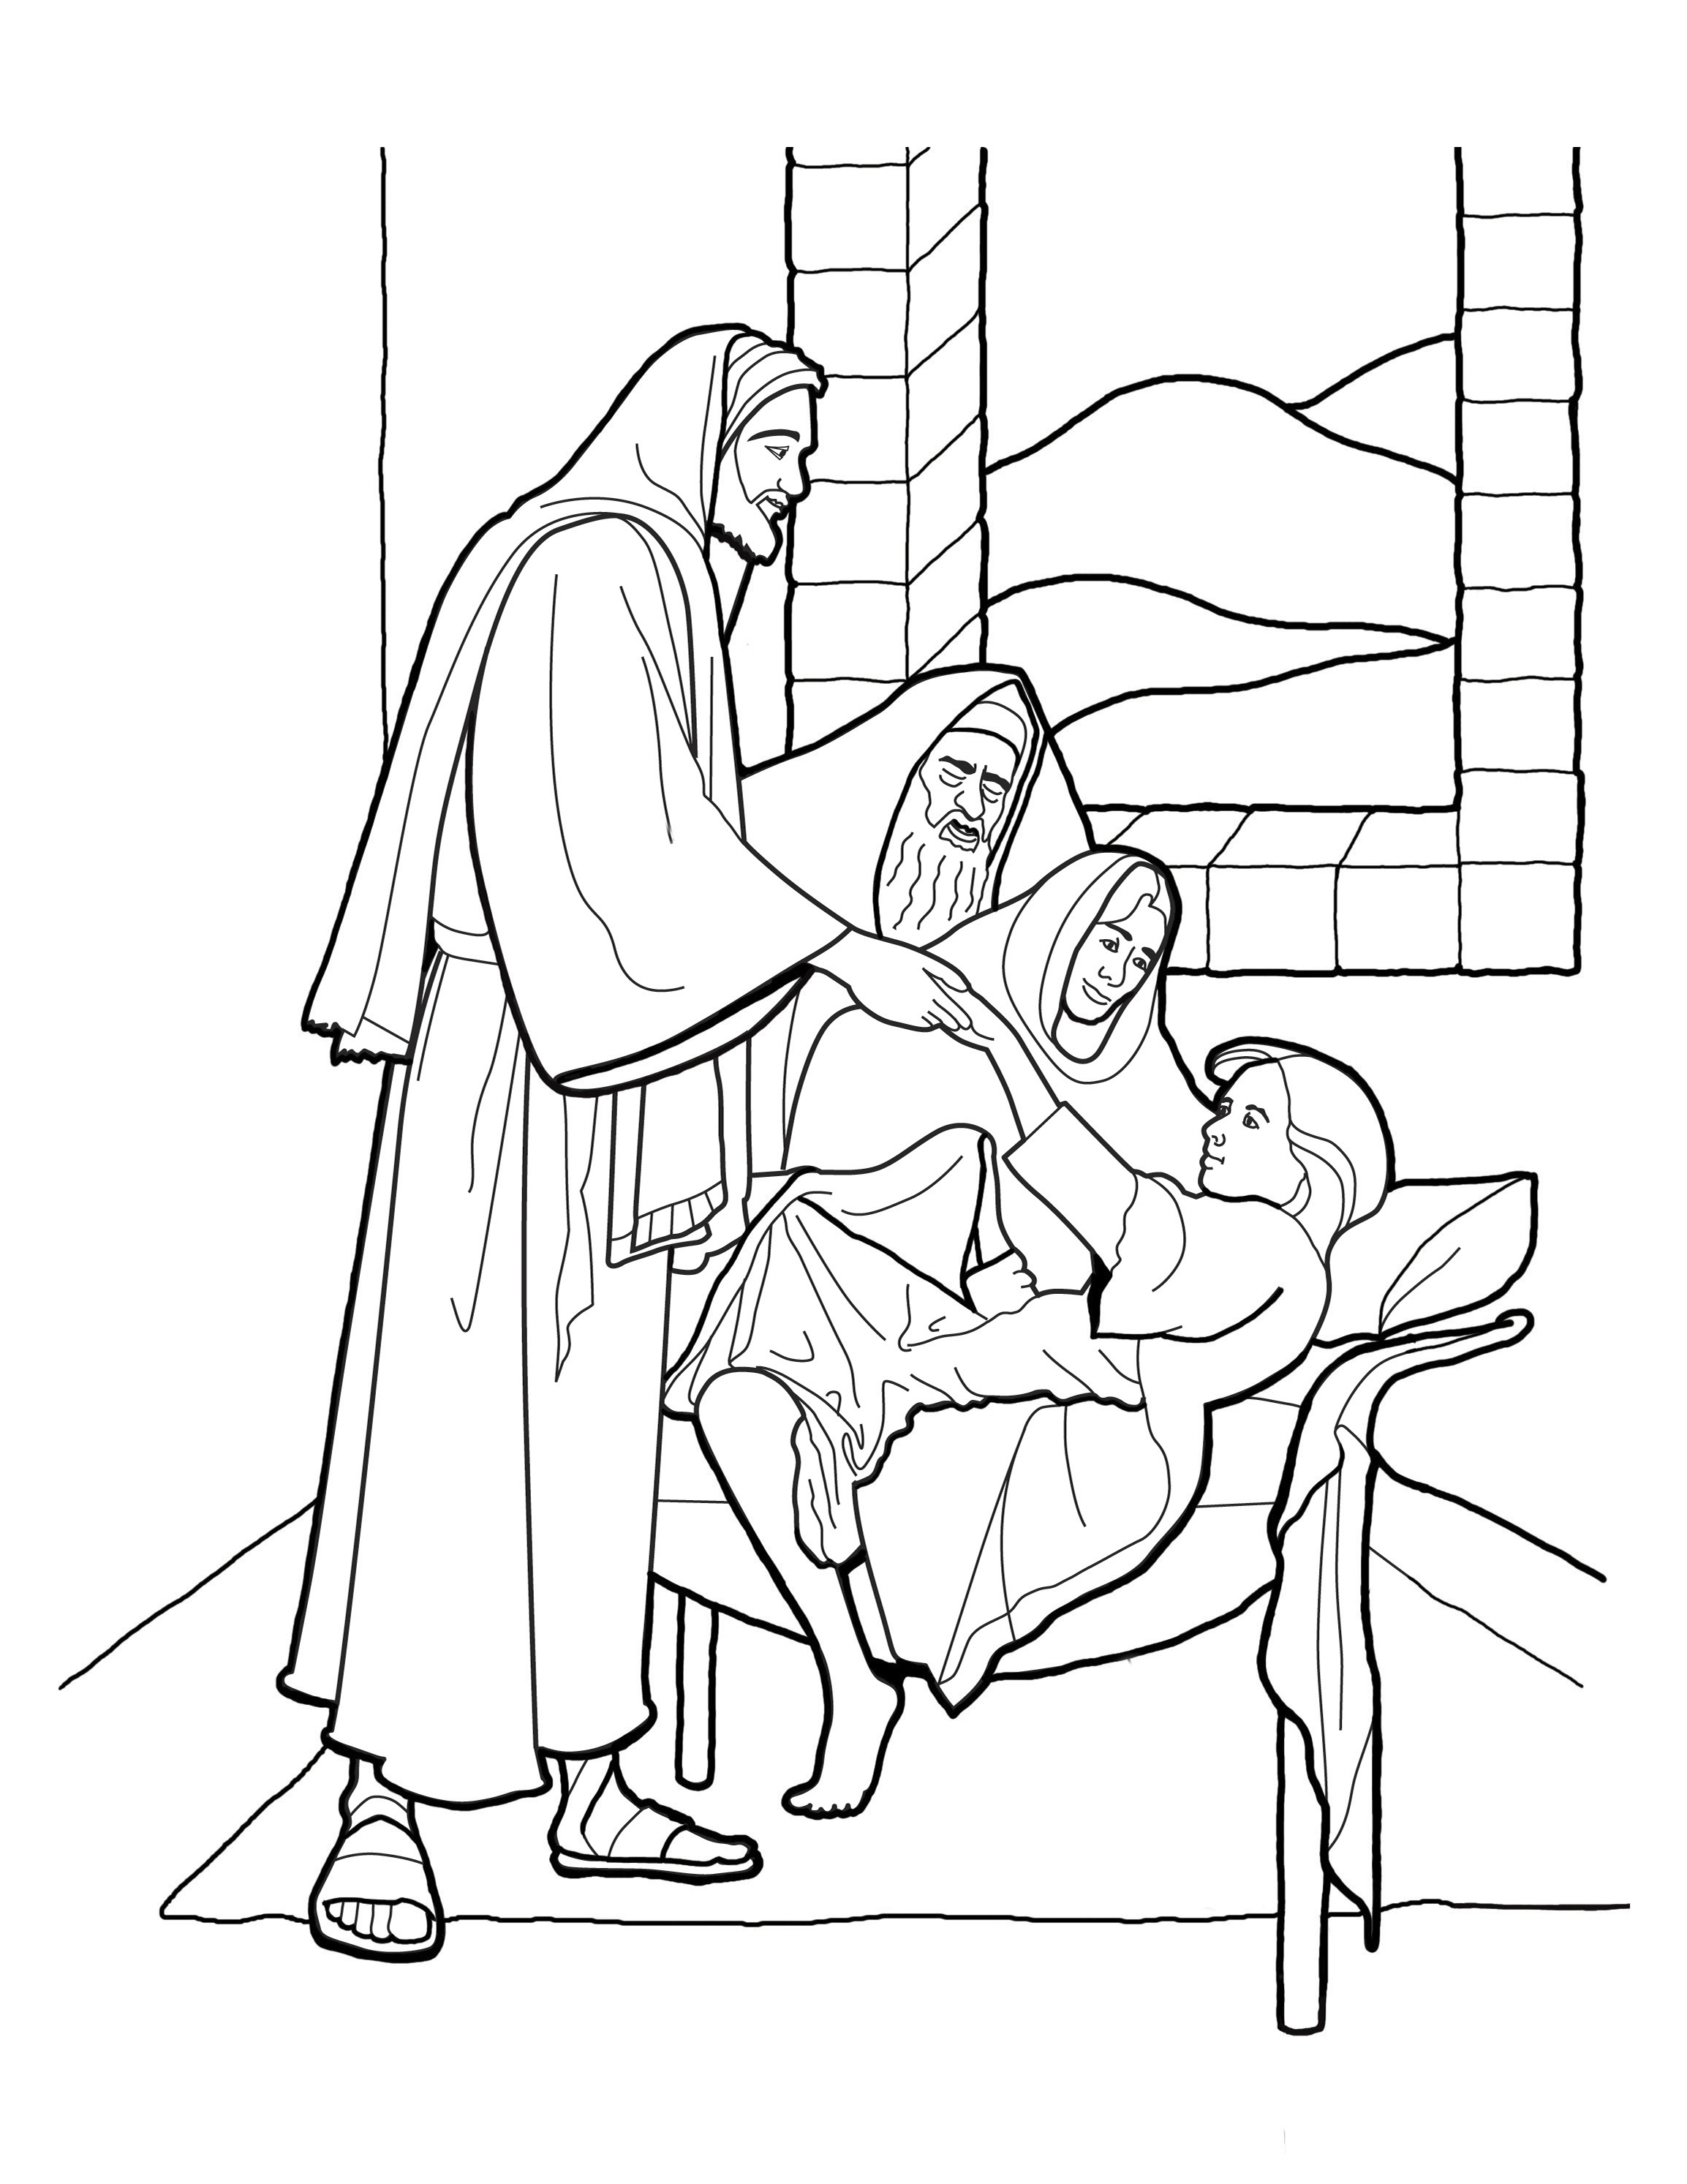 A sketch of Christ raising the daughter of Jairus, based on the painting by Greg Olsen.